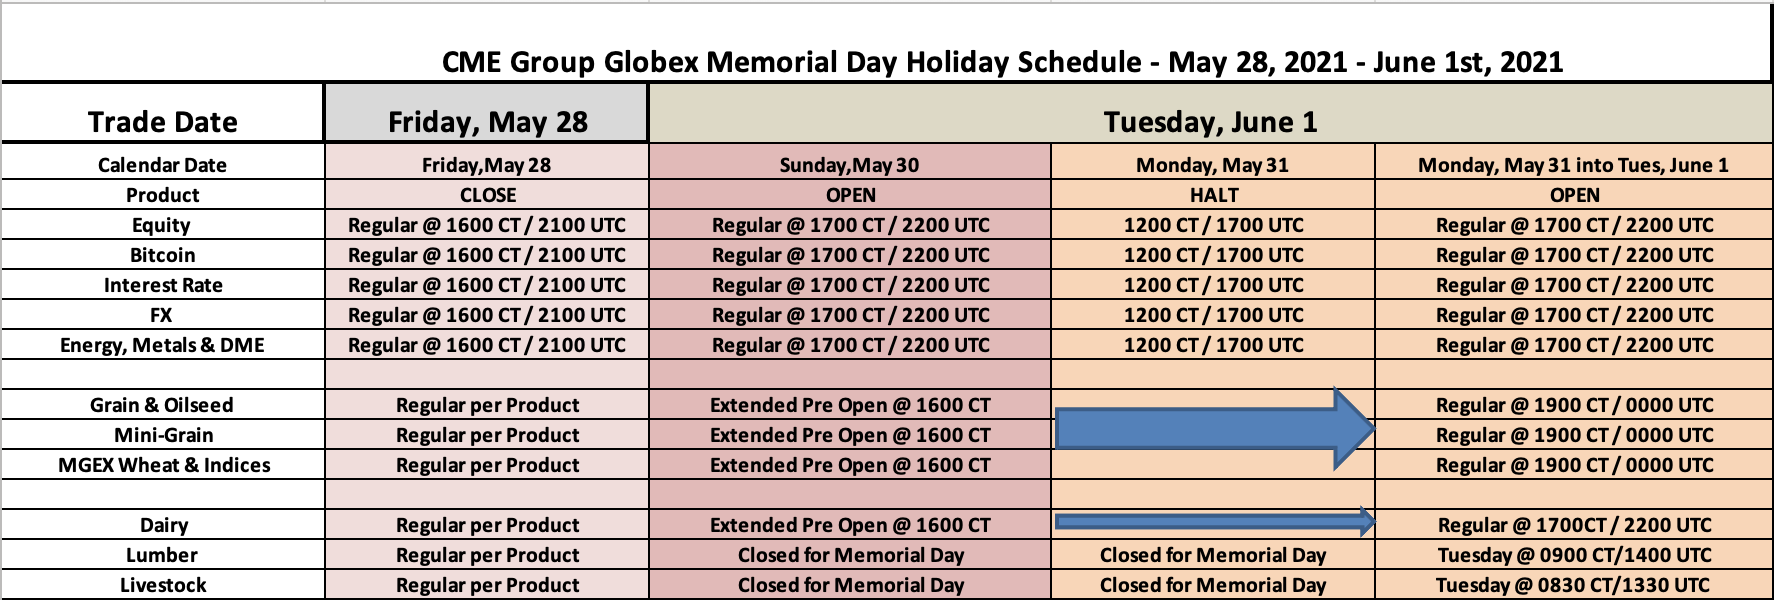 CME Group Globex Memorial Day Holiday Schedule - May 28, 2021 - June 1st, 2021-1